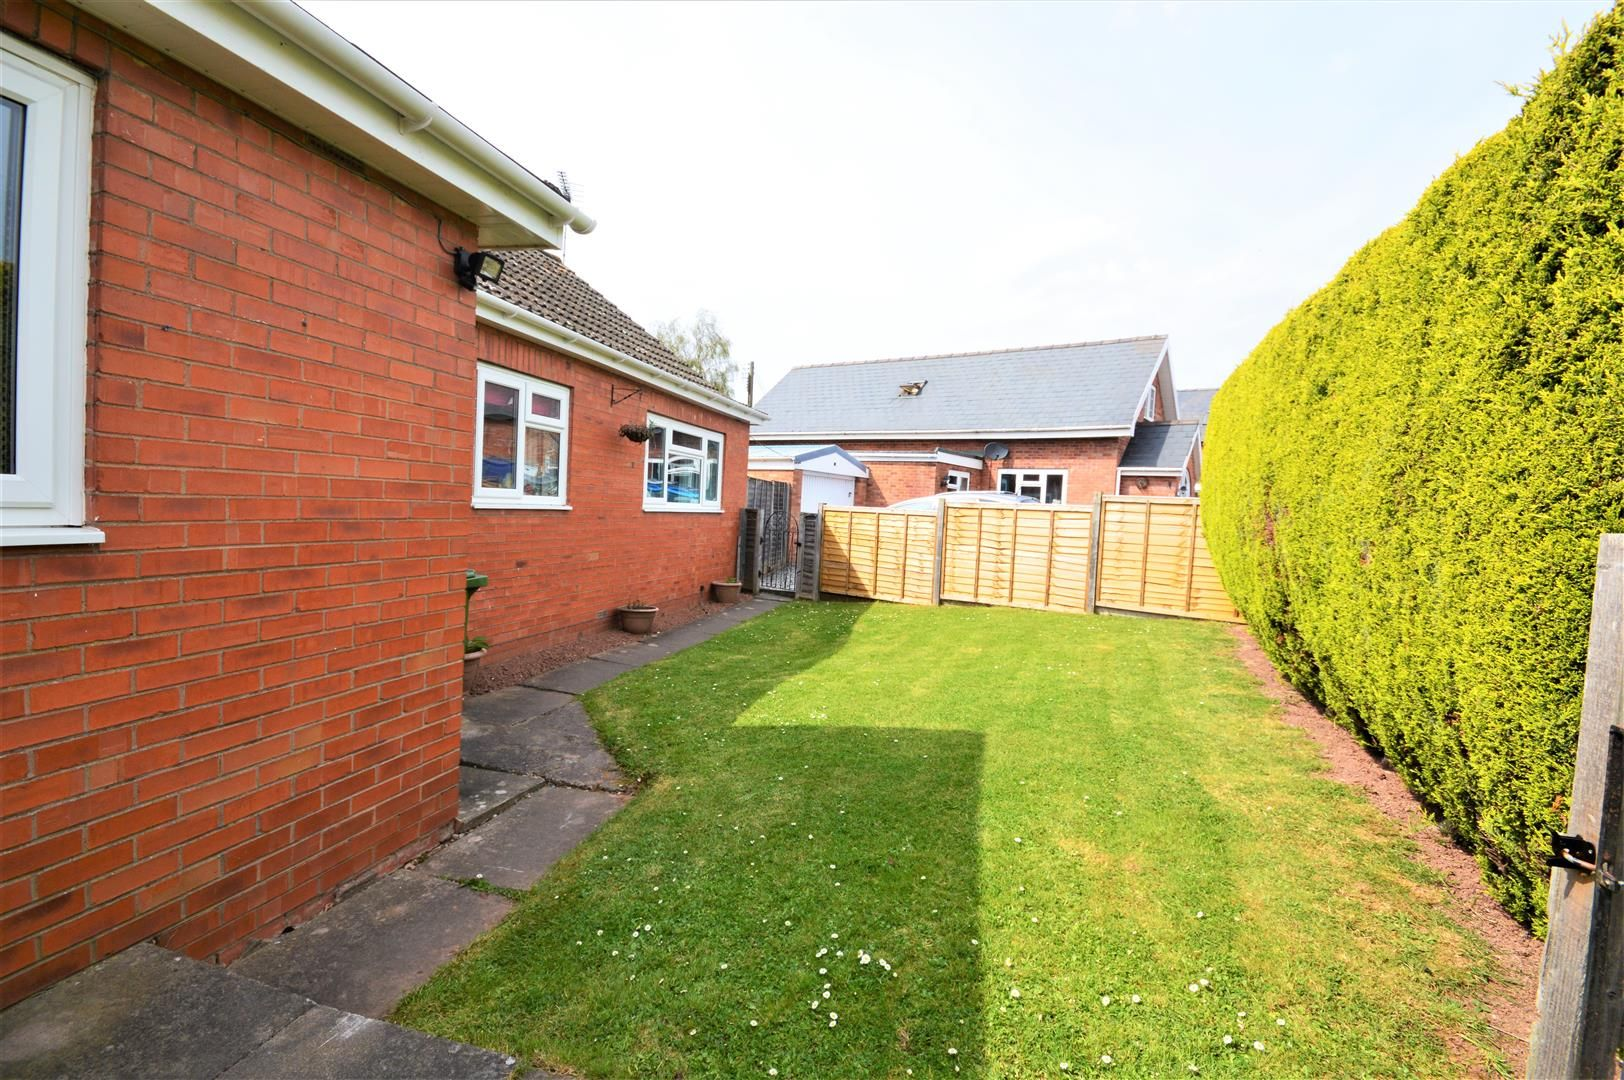 4 bed detached-bungalow for sale in Marden 17